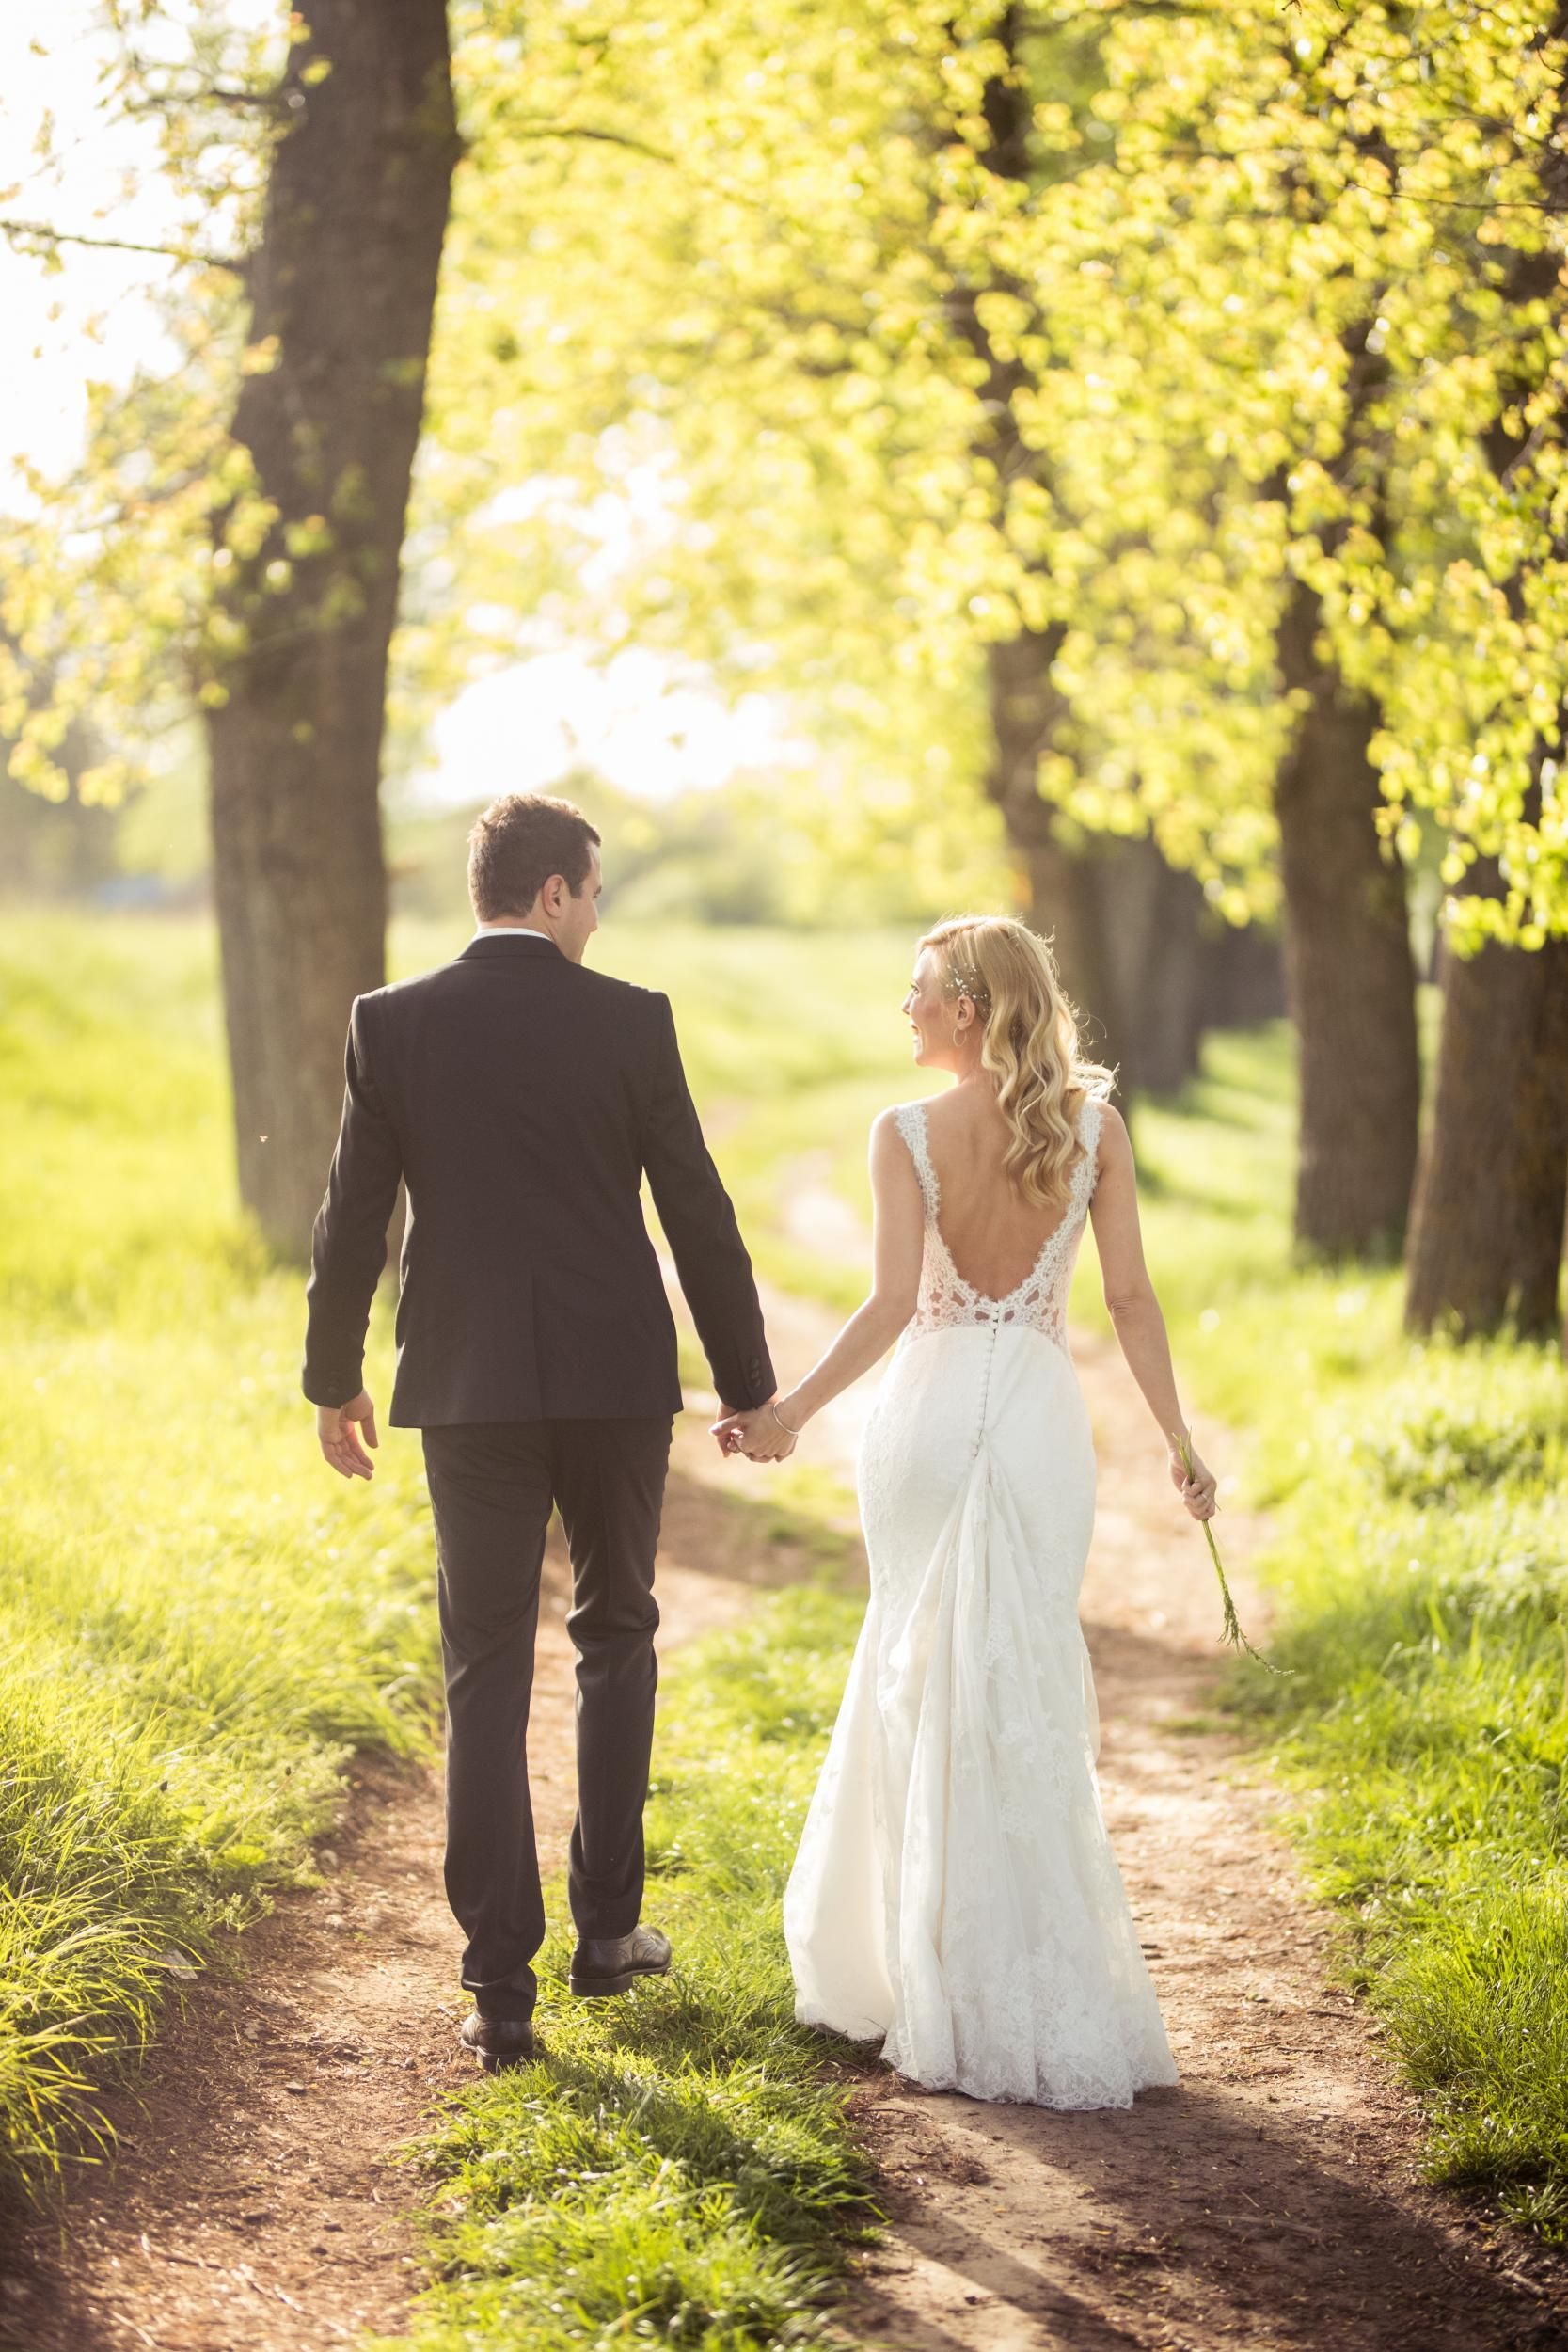 27 wedding guests reveal the moment they knew the marriage